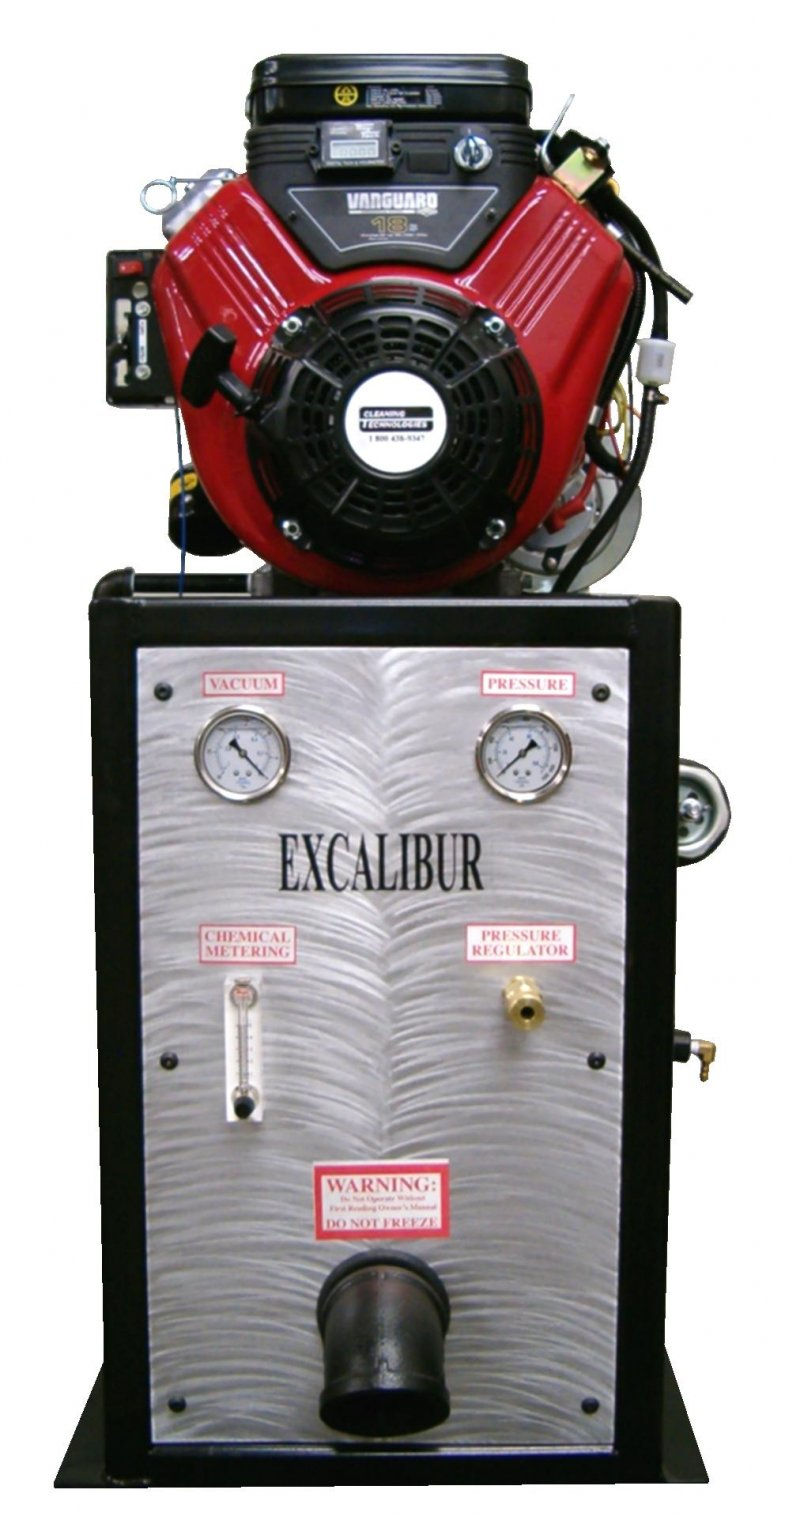 4 - The EXCALIBUR Carpet Cleaning System